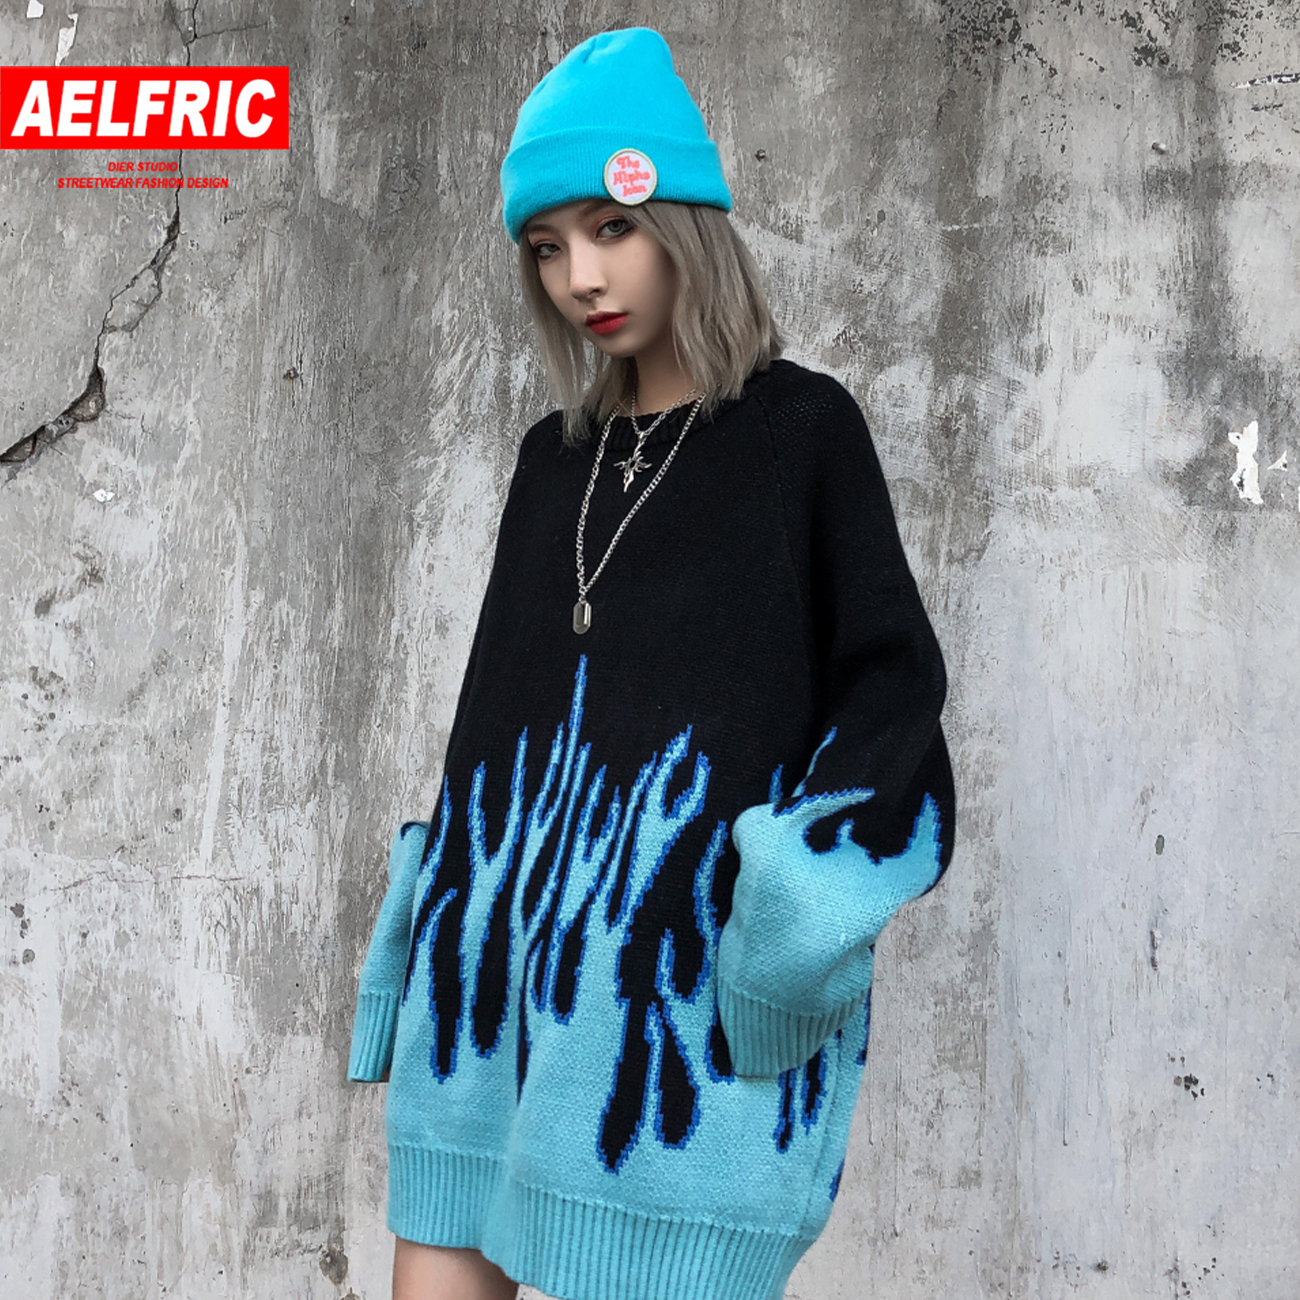 Aelfric Hip Hop Sweater Pullover Women Blue Fire Flame Knitted Sweater Harajuku Streetwear Tops Casual Couple Sweater Black